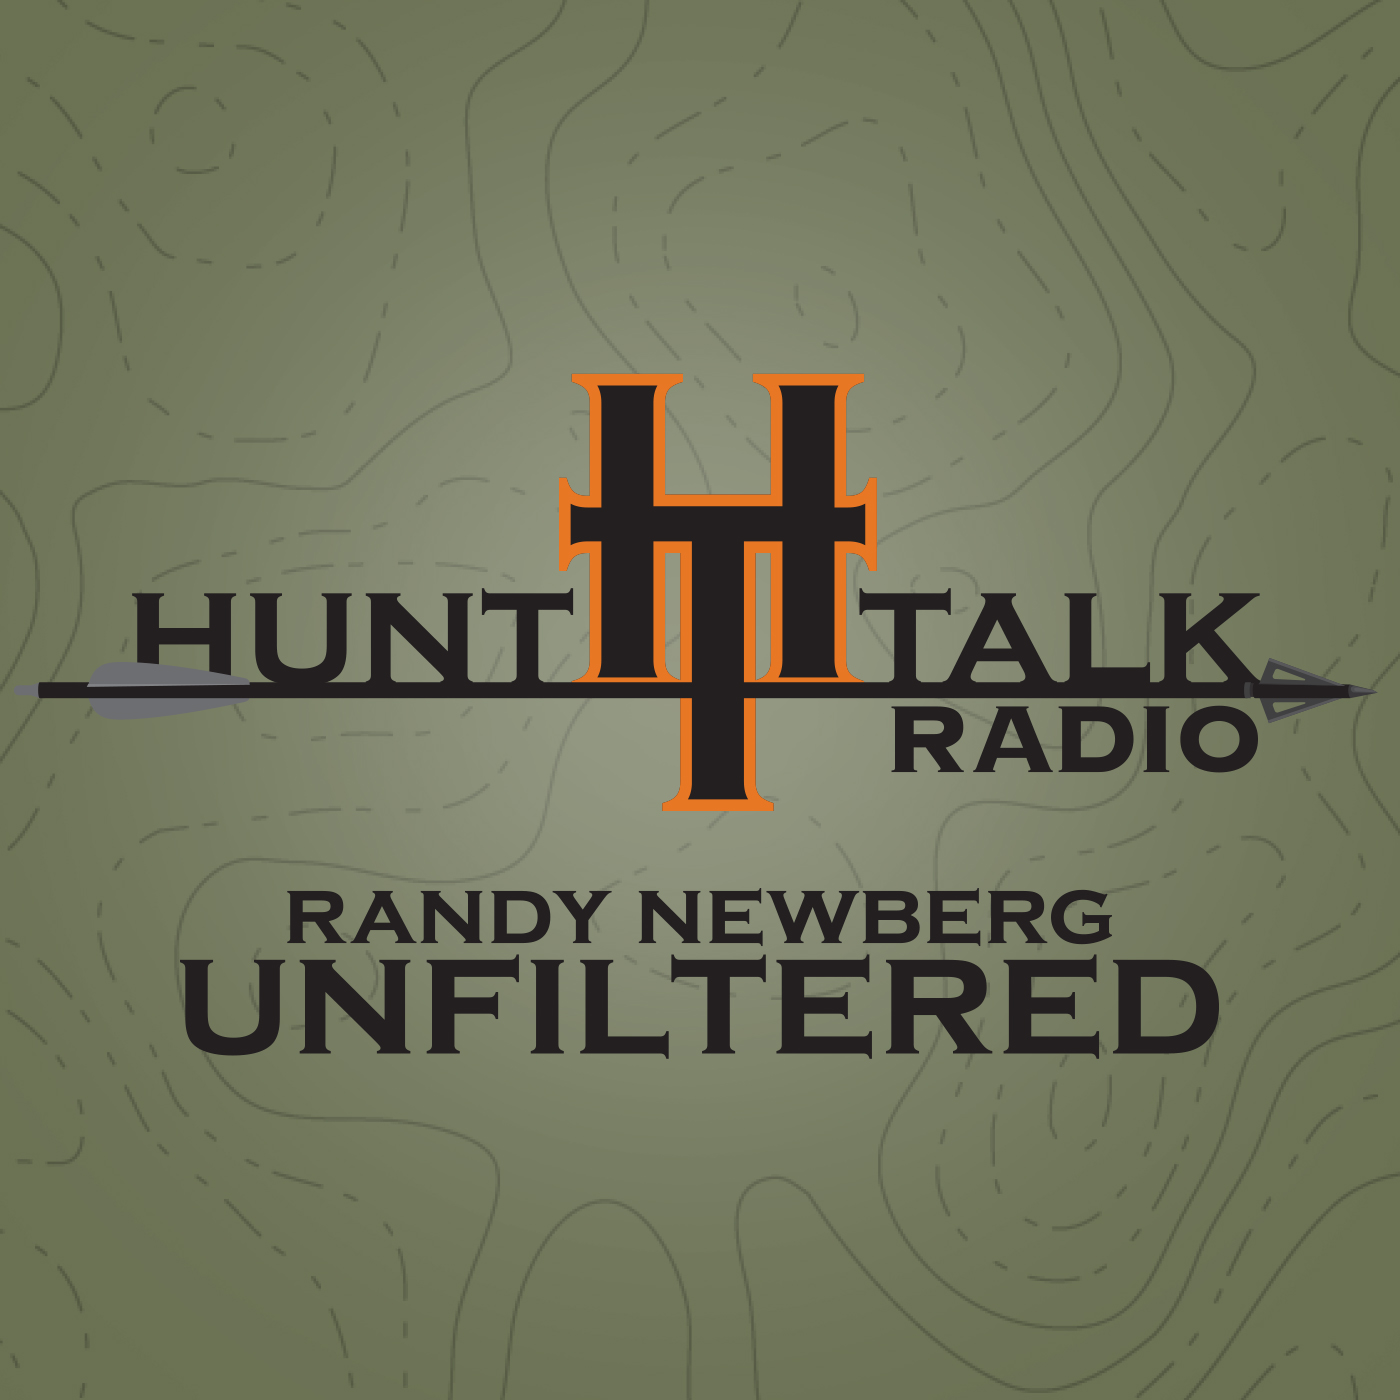 Hunt Talk Radio